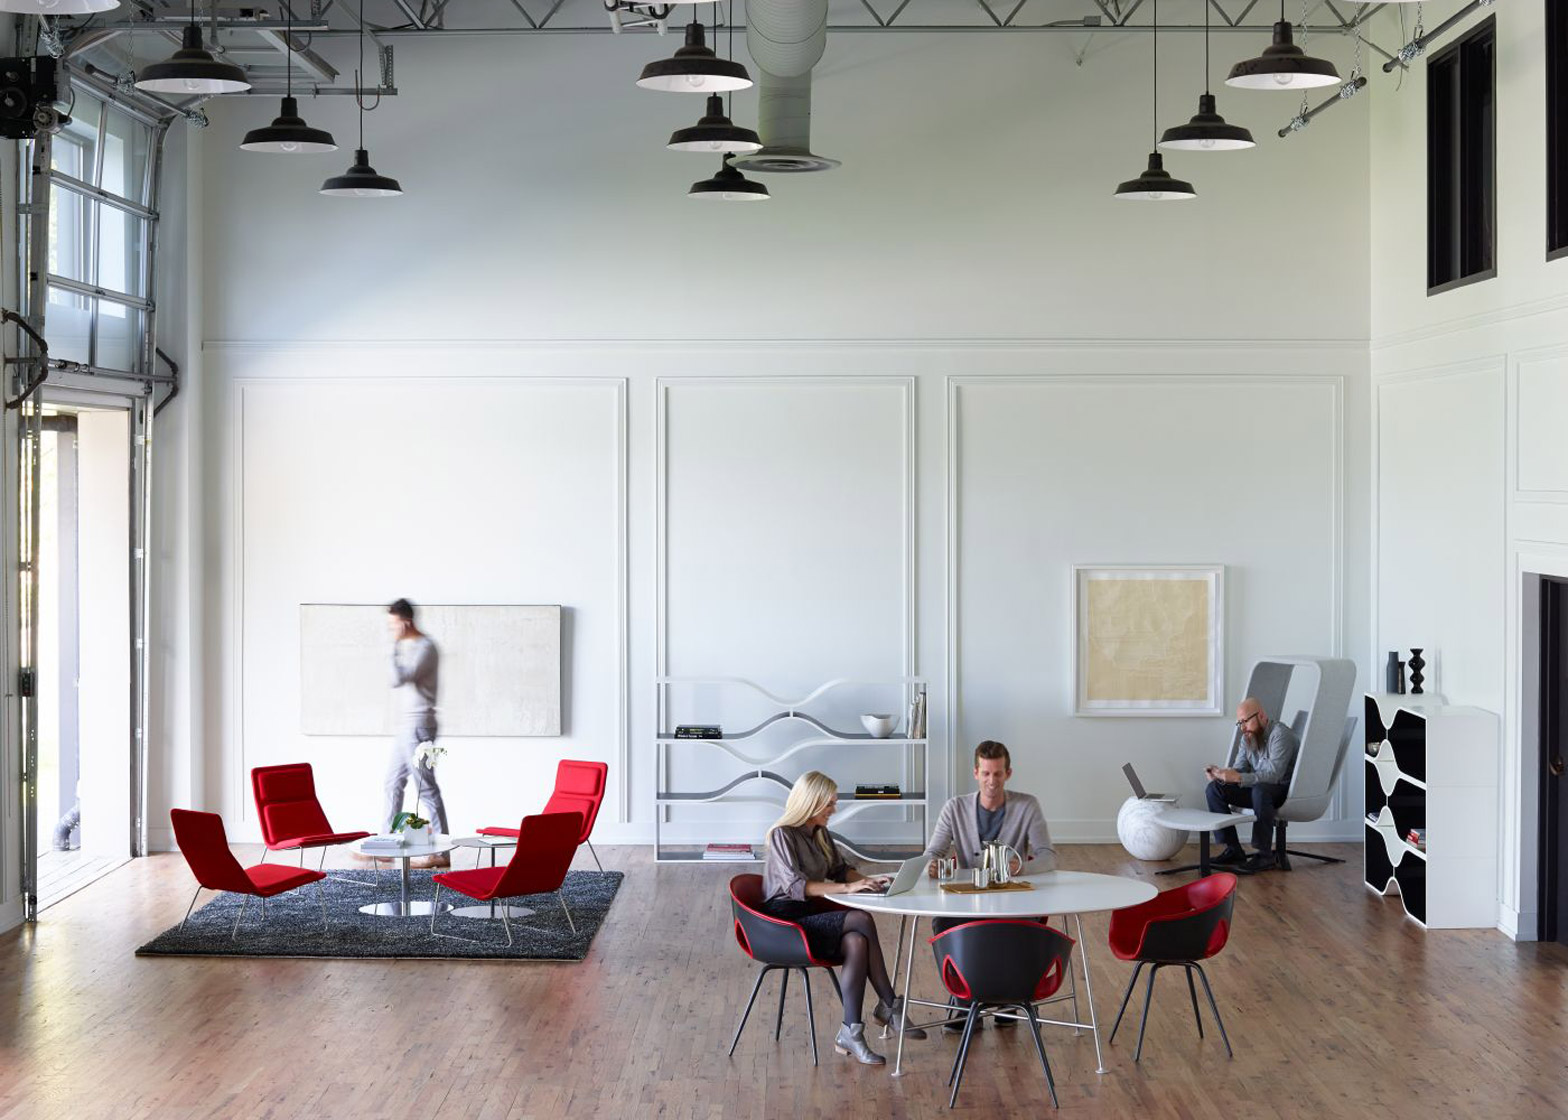 Have a Work Space to Operate From